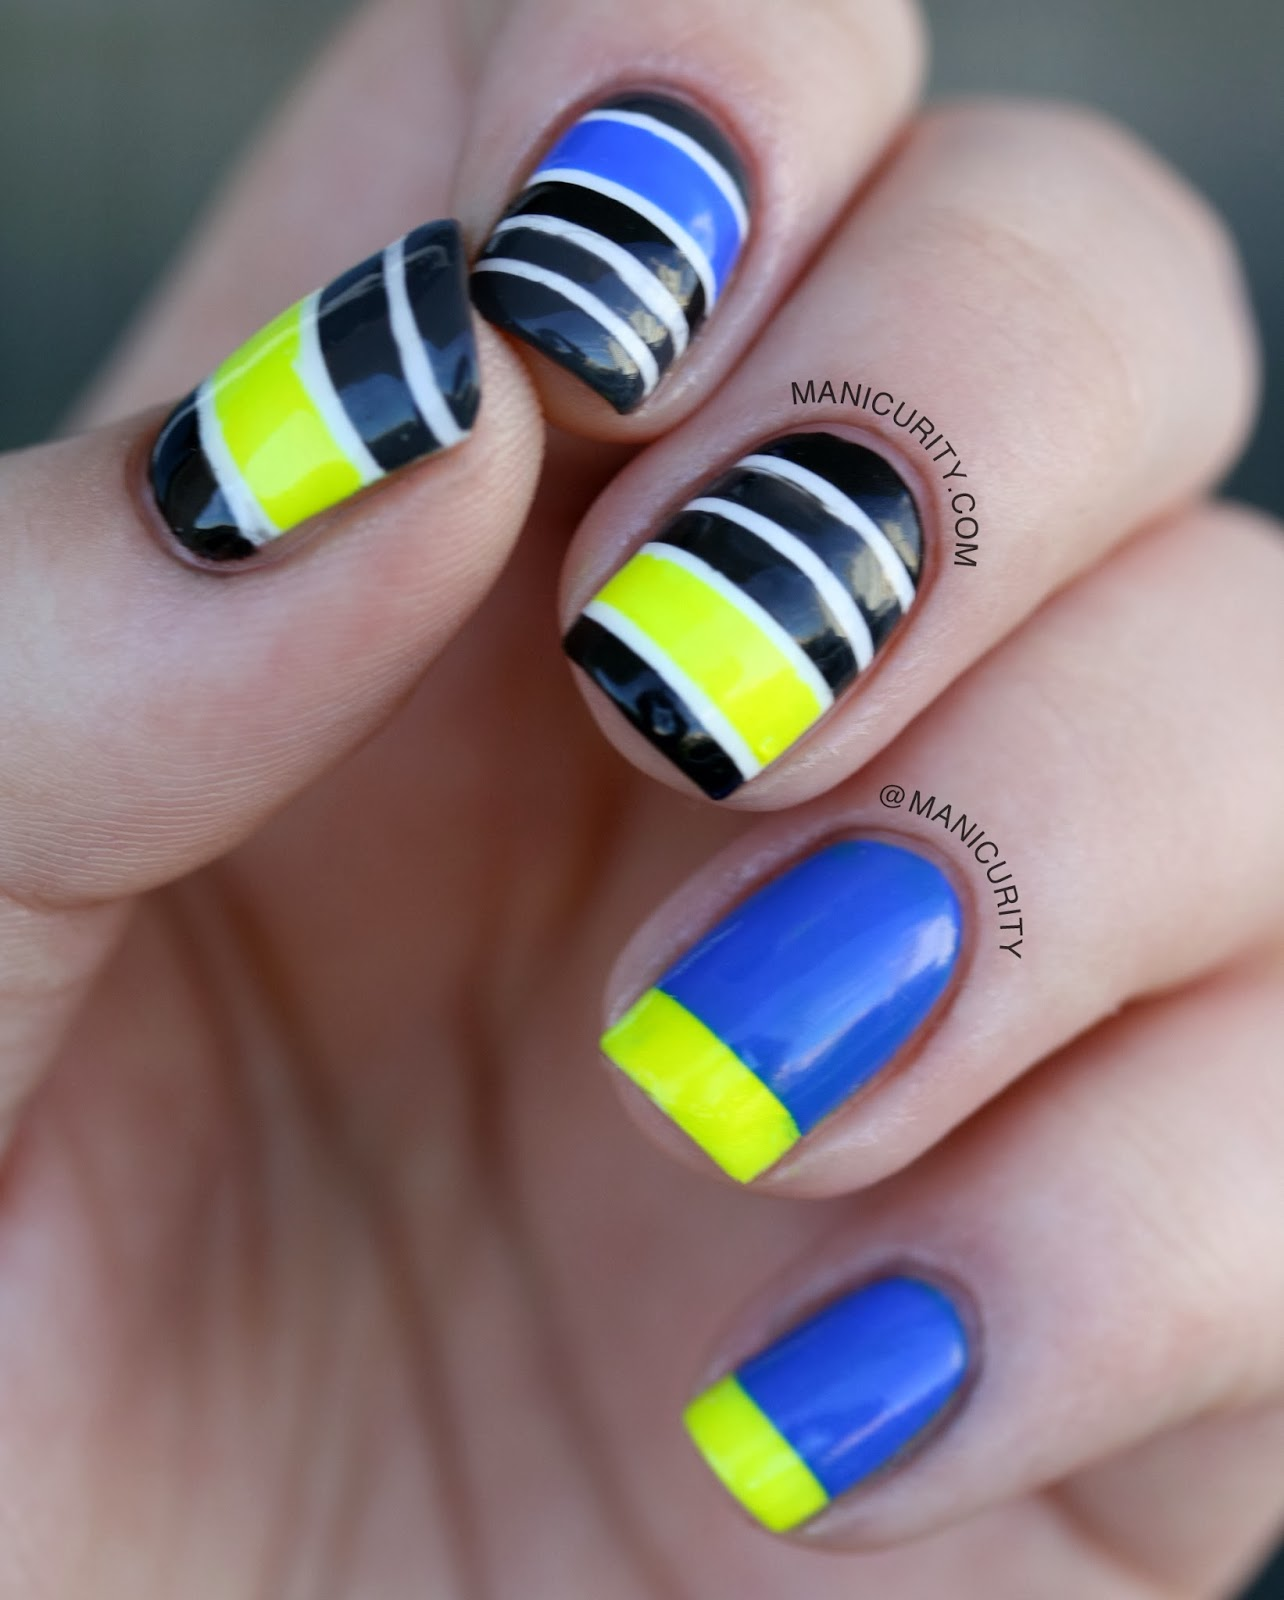 Manicurity: Neon Stripe Mish-Mash Nails inspired by Work Play Polish